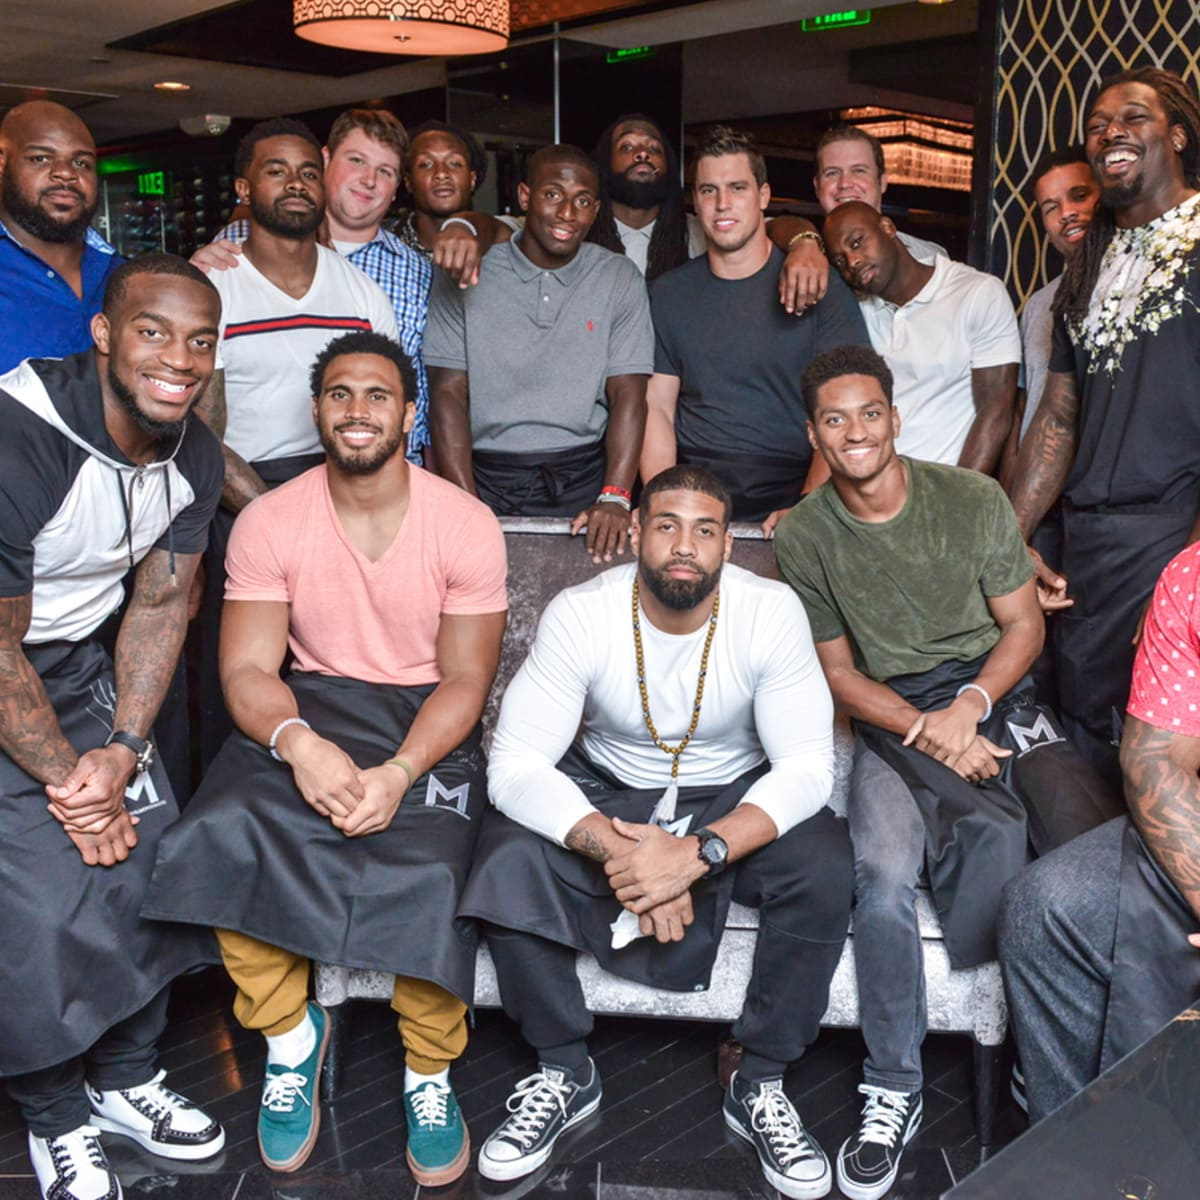 Arian Foster charity dinner Morton's Houston Texans players